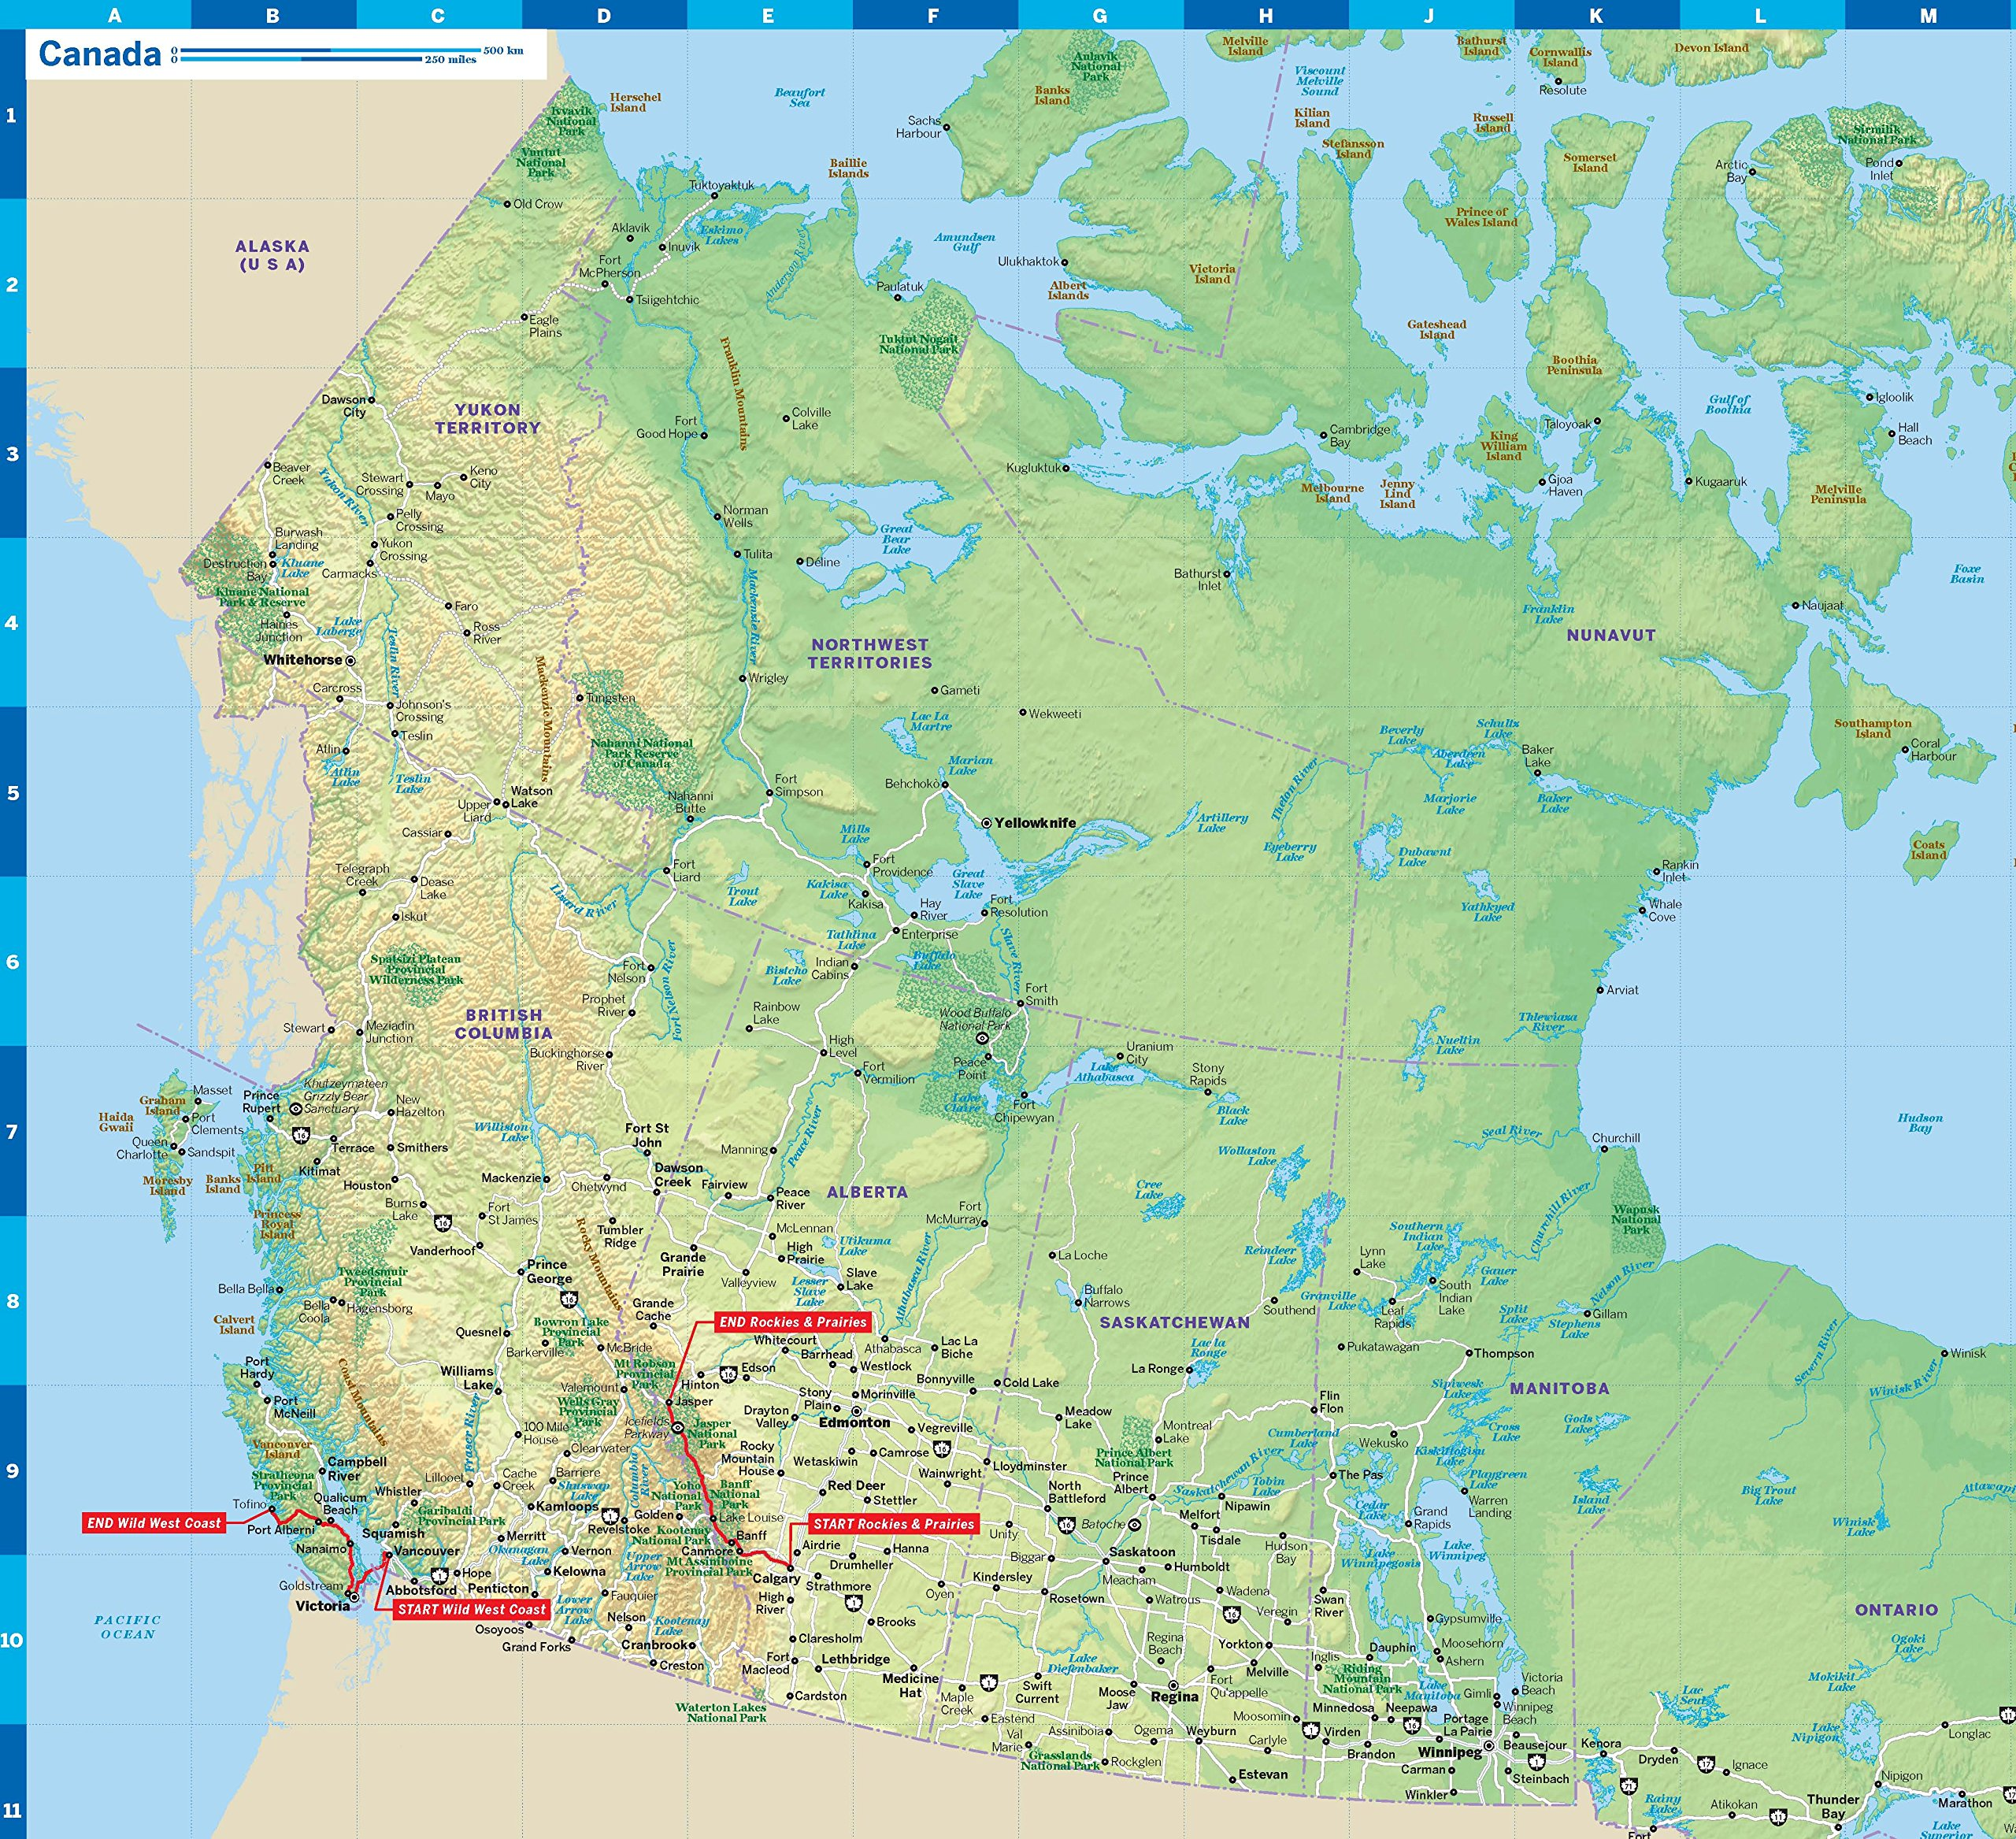 Canada Map Lonely Planet Lonely PlaCanada Planning Map (Planning Maps): Lonely Pla